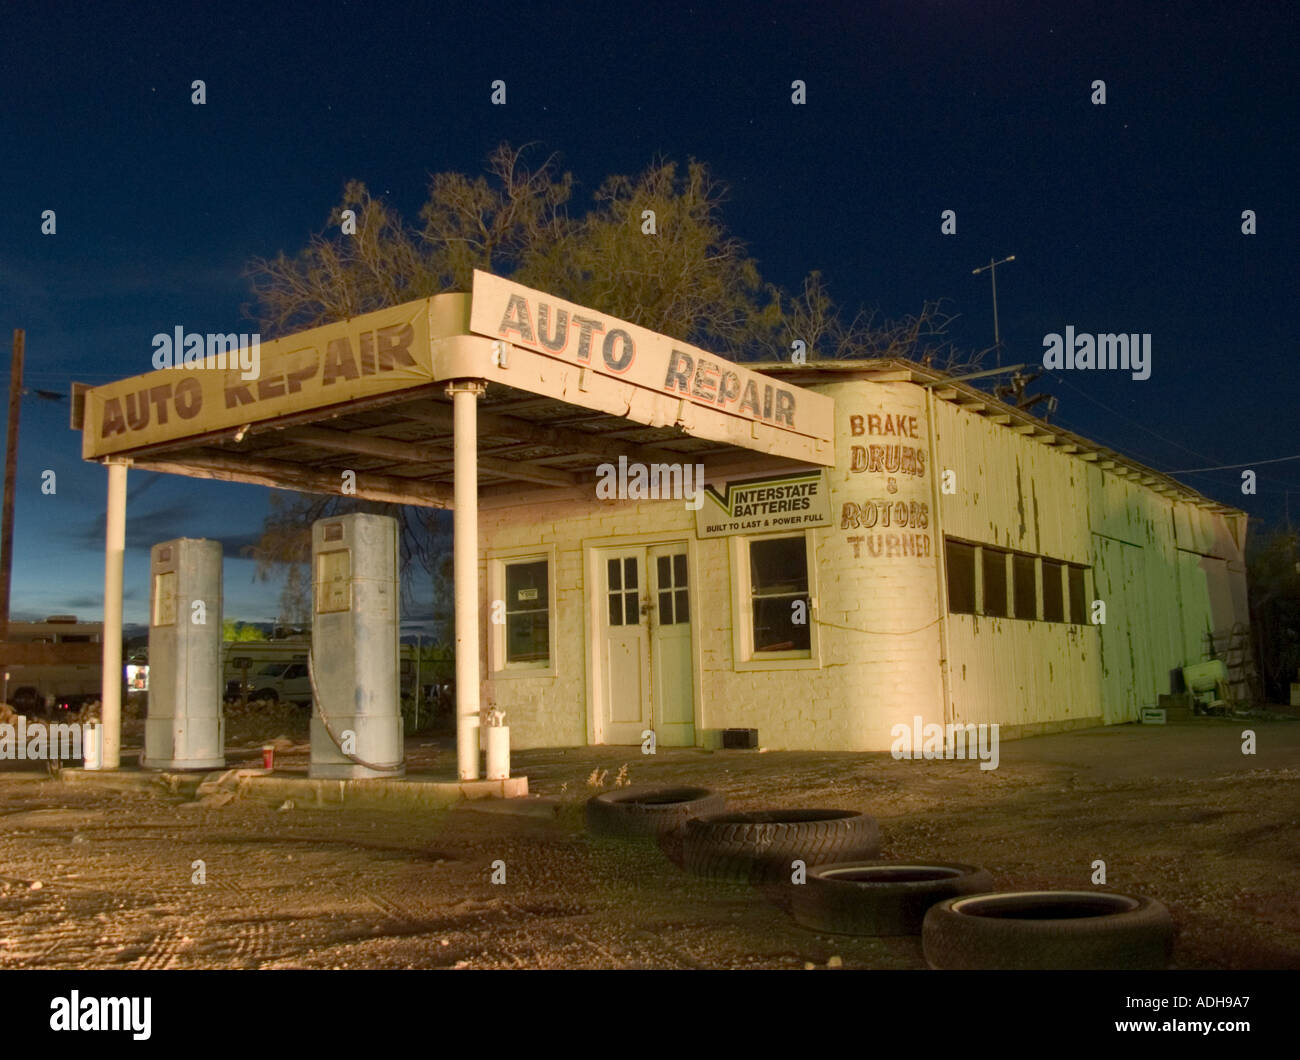 Night Shot Of An Old Abandoned Gas Station In The Arizona Desert Stock Photo Alamy